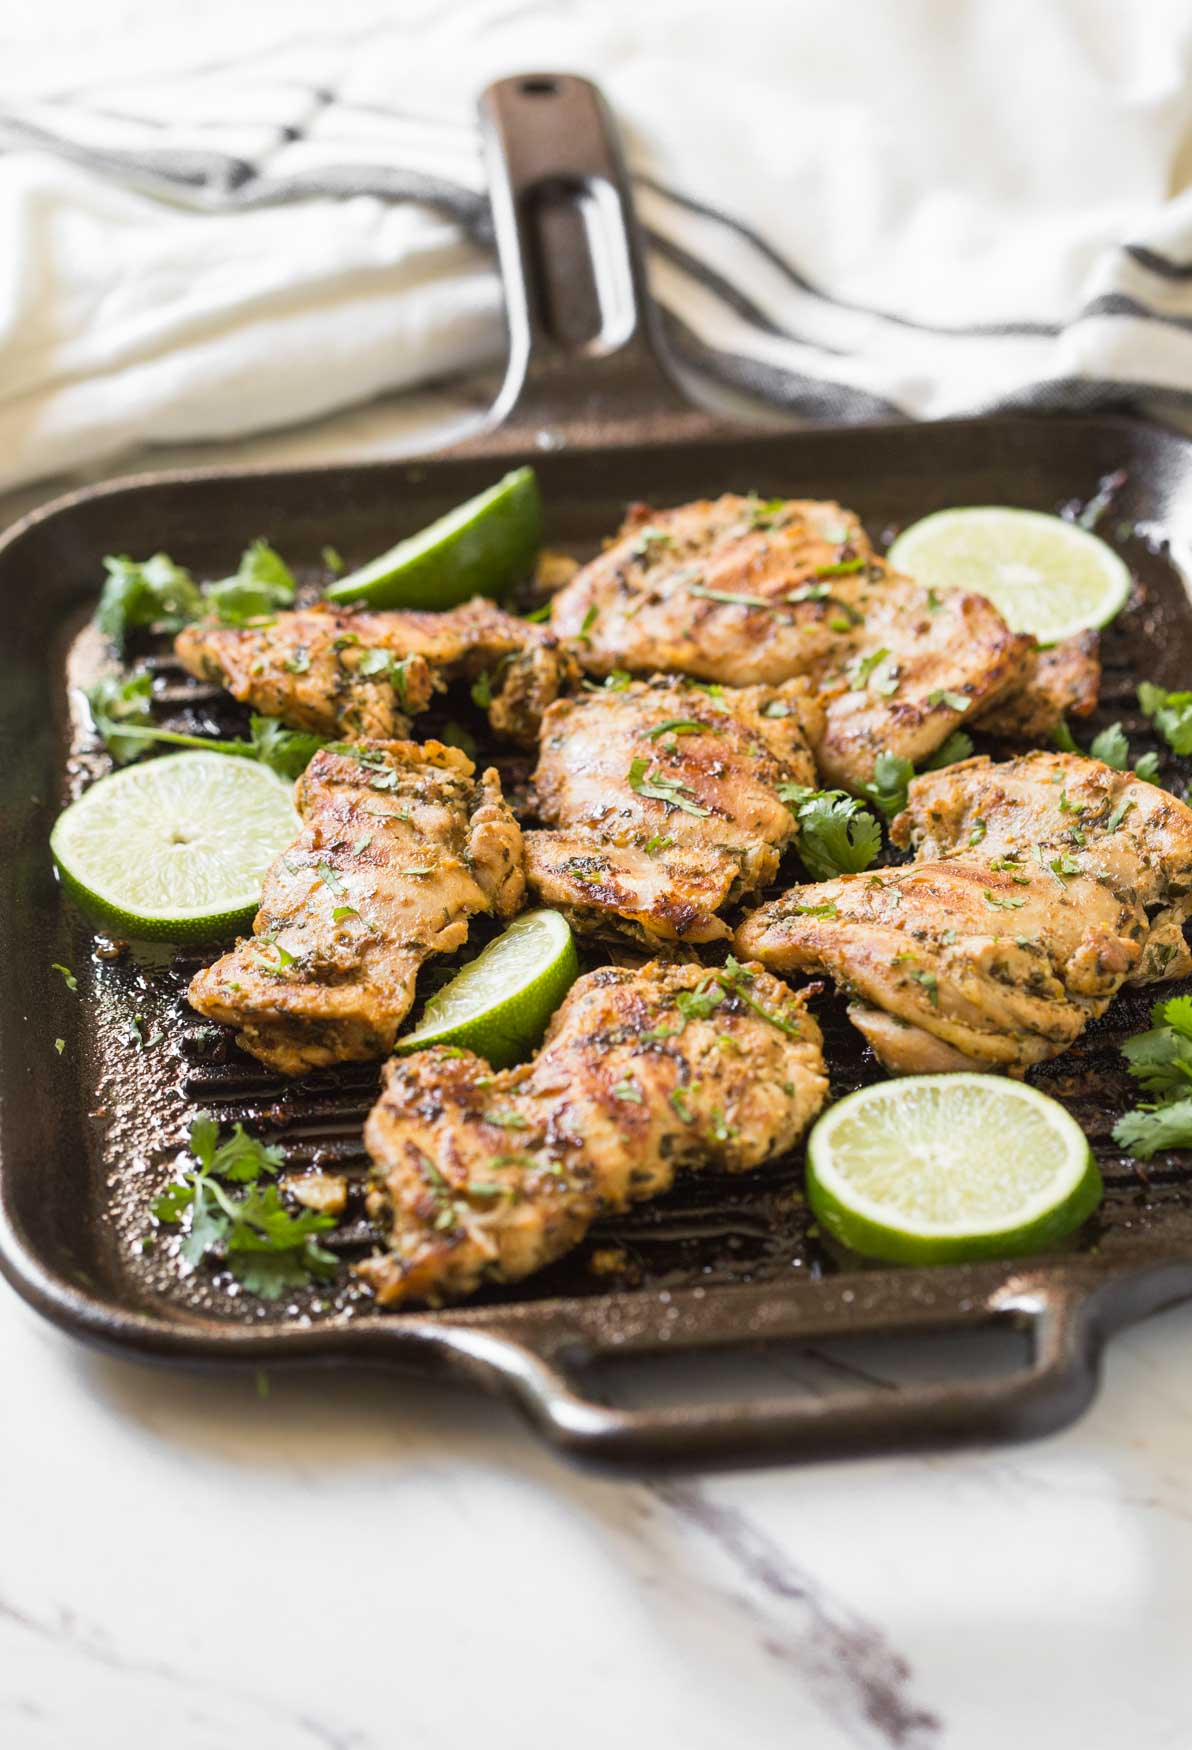 This grilled cilantro lime chicken thighs recipe is perfect to add in the outdoor barbecue party menu during summer. Prep ahead in no time and take them to barbecue potlucks. Or just cook marinated chicken on the grill or frying pan for the weeknight dinner. | #watchwhatueat #grilledchicken #cilantrolime #grilling #chickenthighs